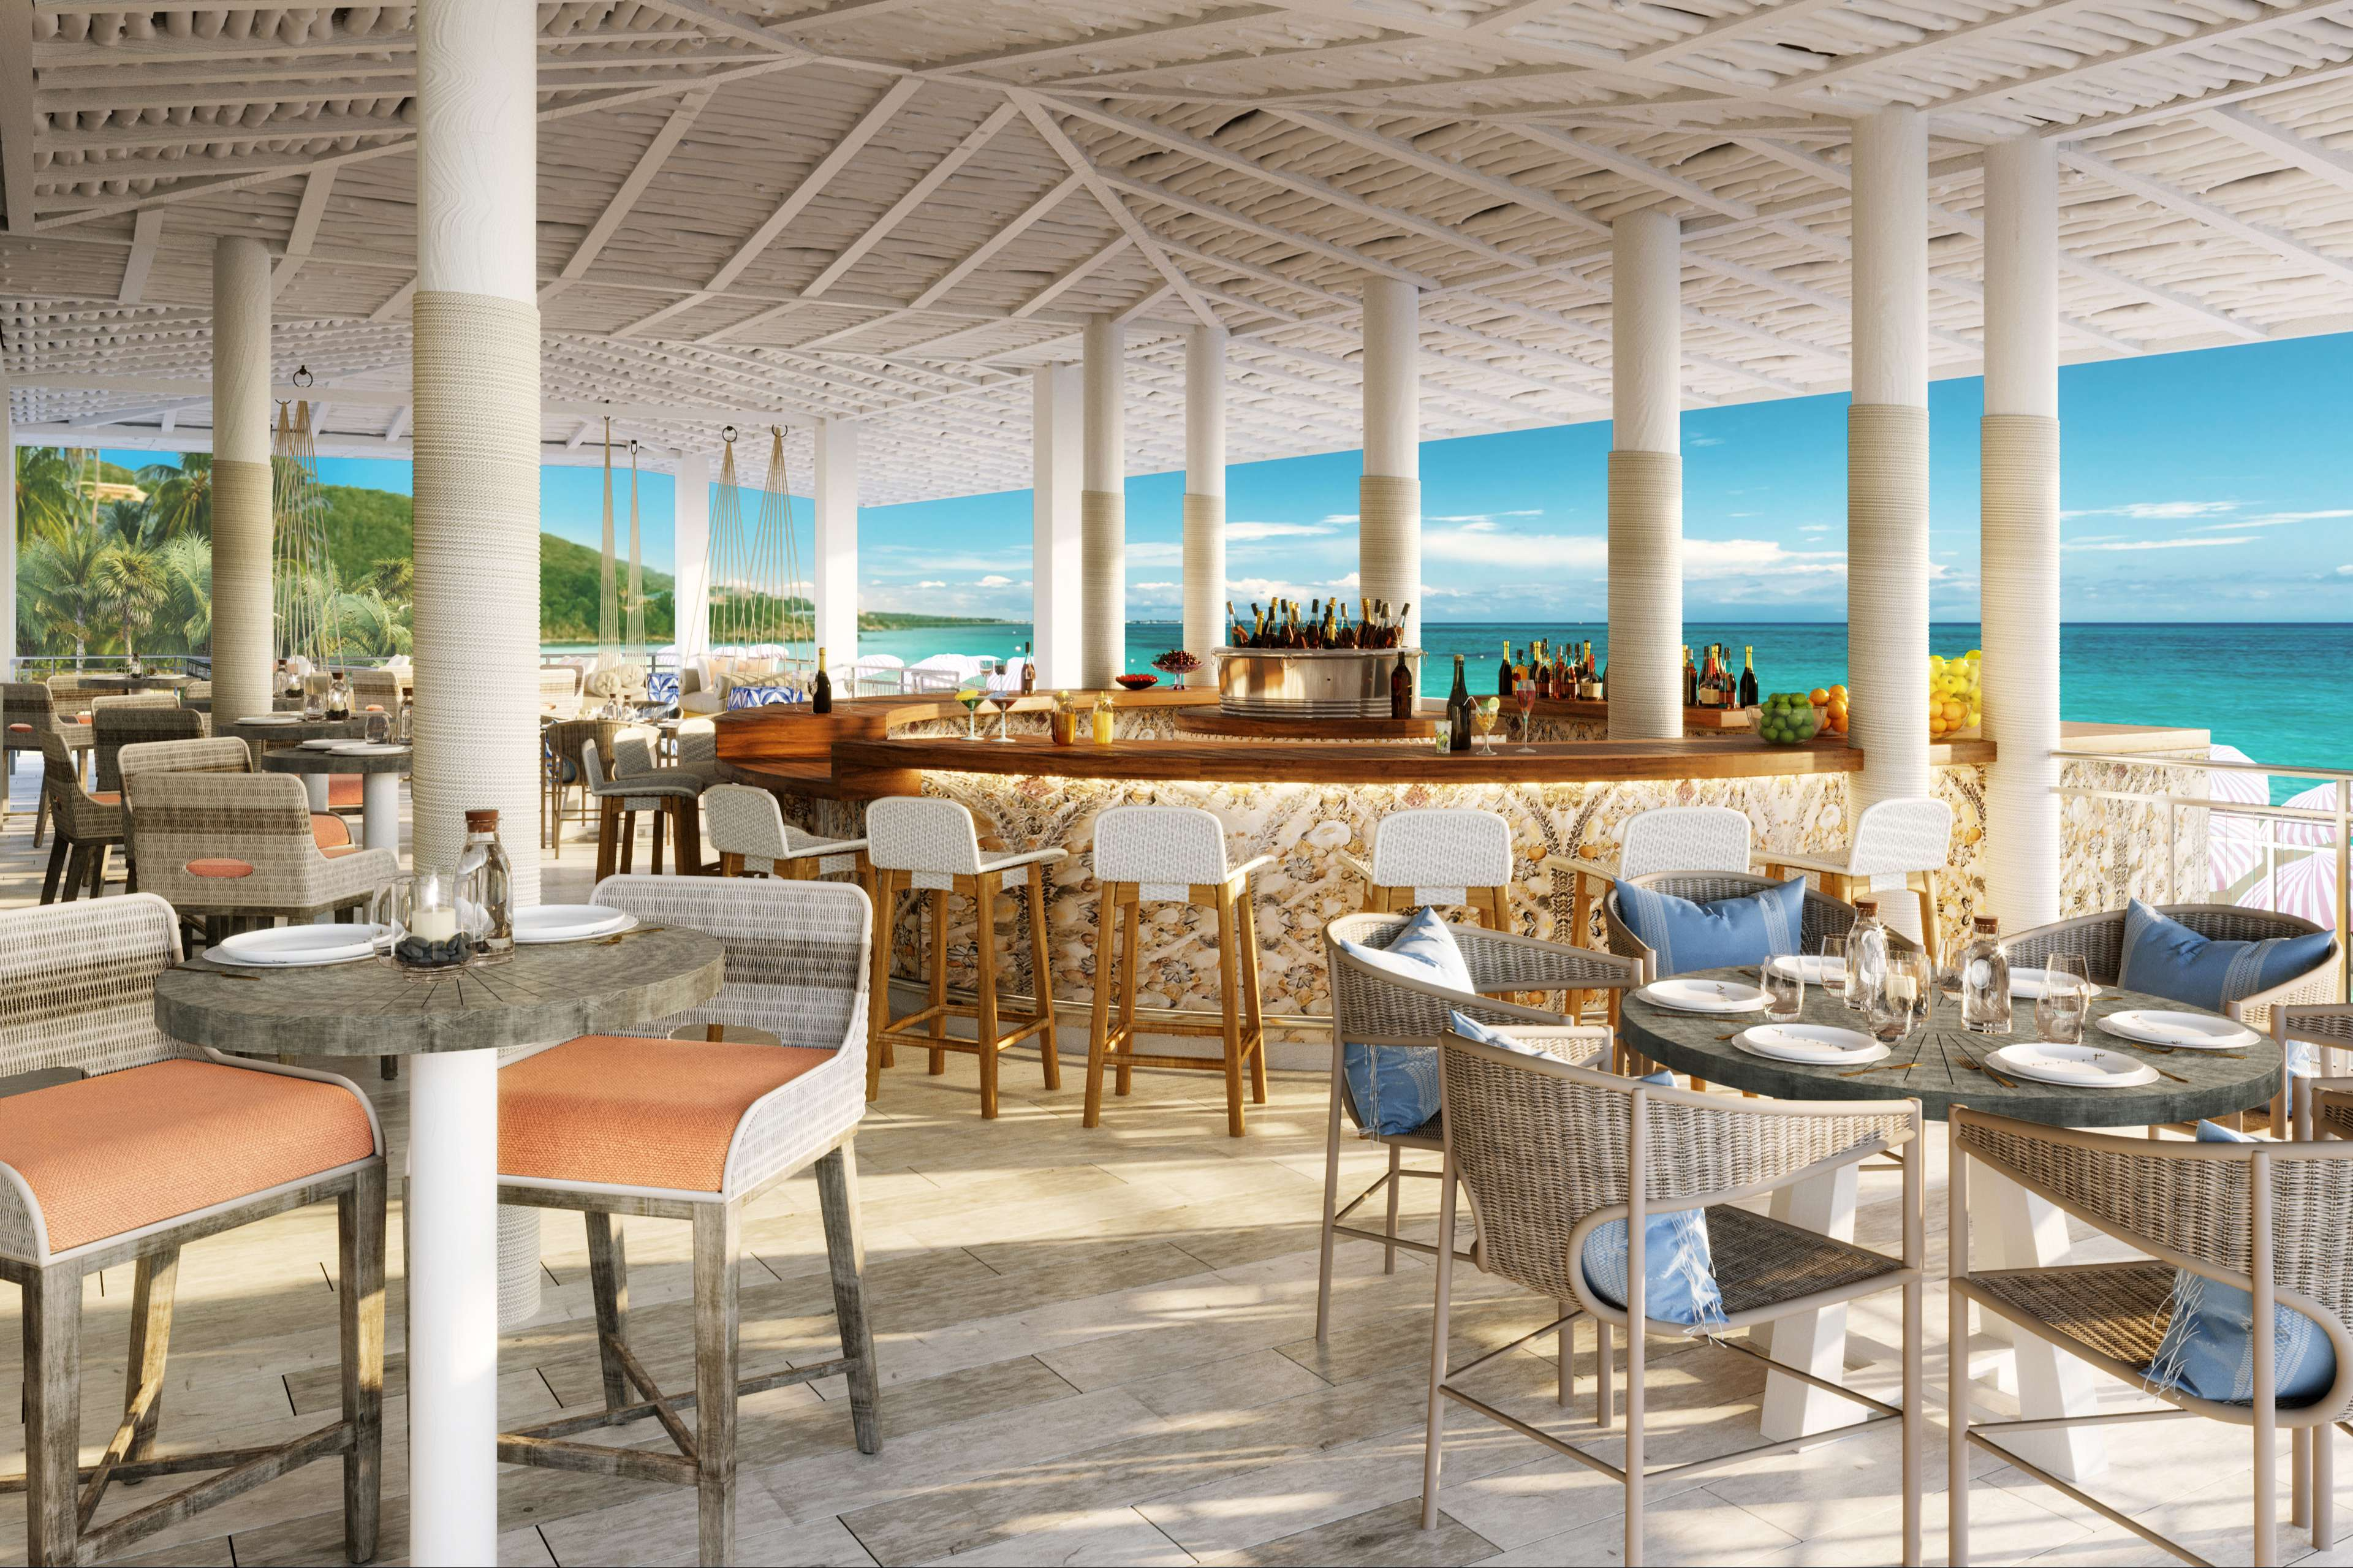 Rendering of the bright an spacious Coco's Beach Club at Noni Beach Resort in St. Thomas